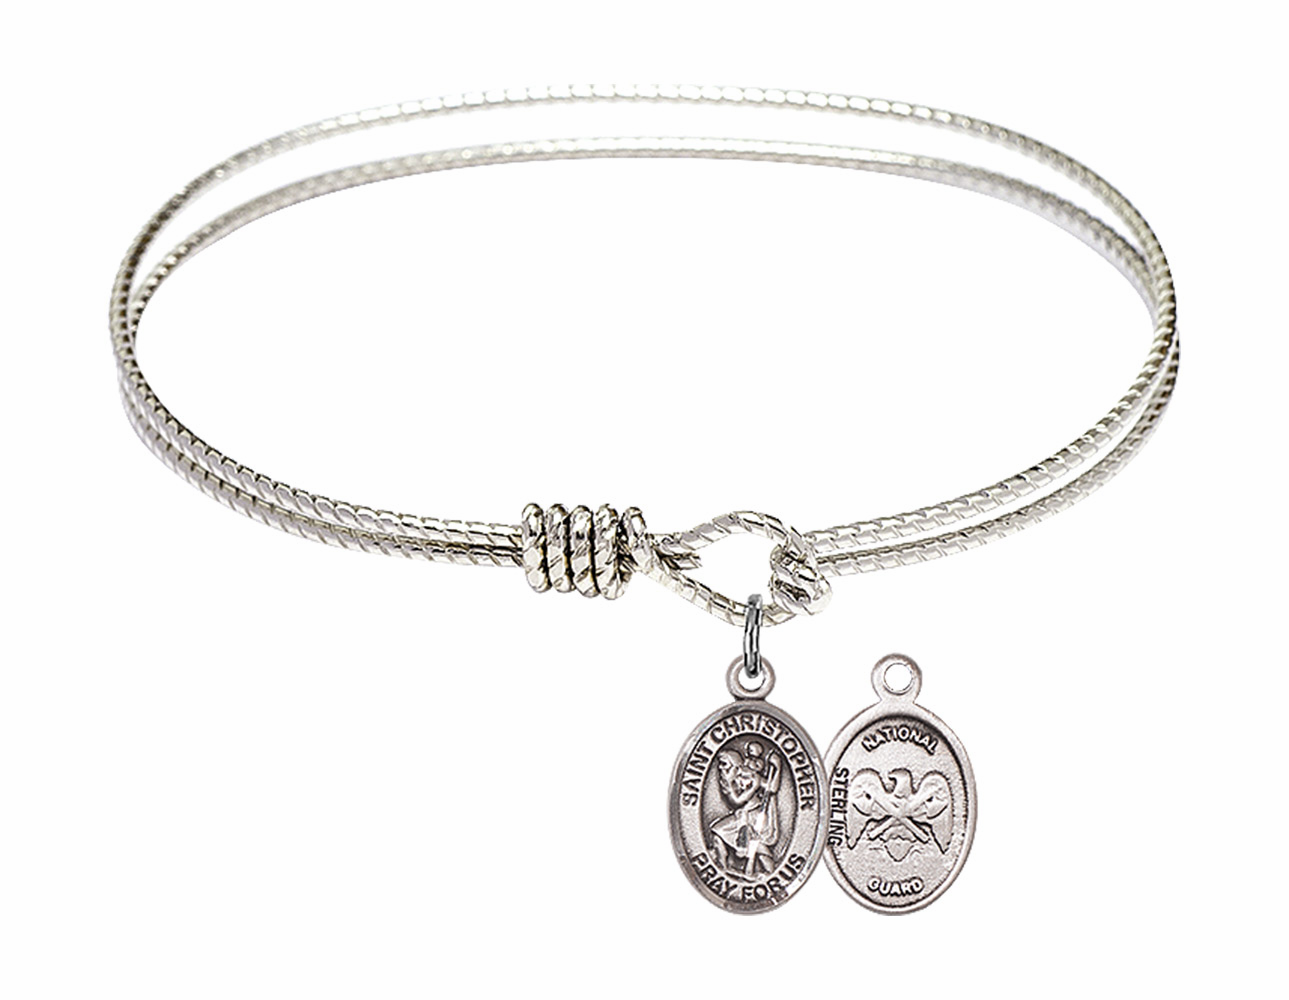 Round Loop St Christopher National Guard Bangle Sterling Silver Charm  Bracelet by Bliss